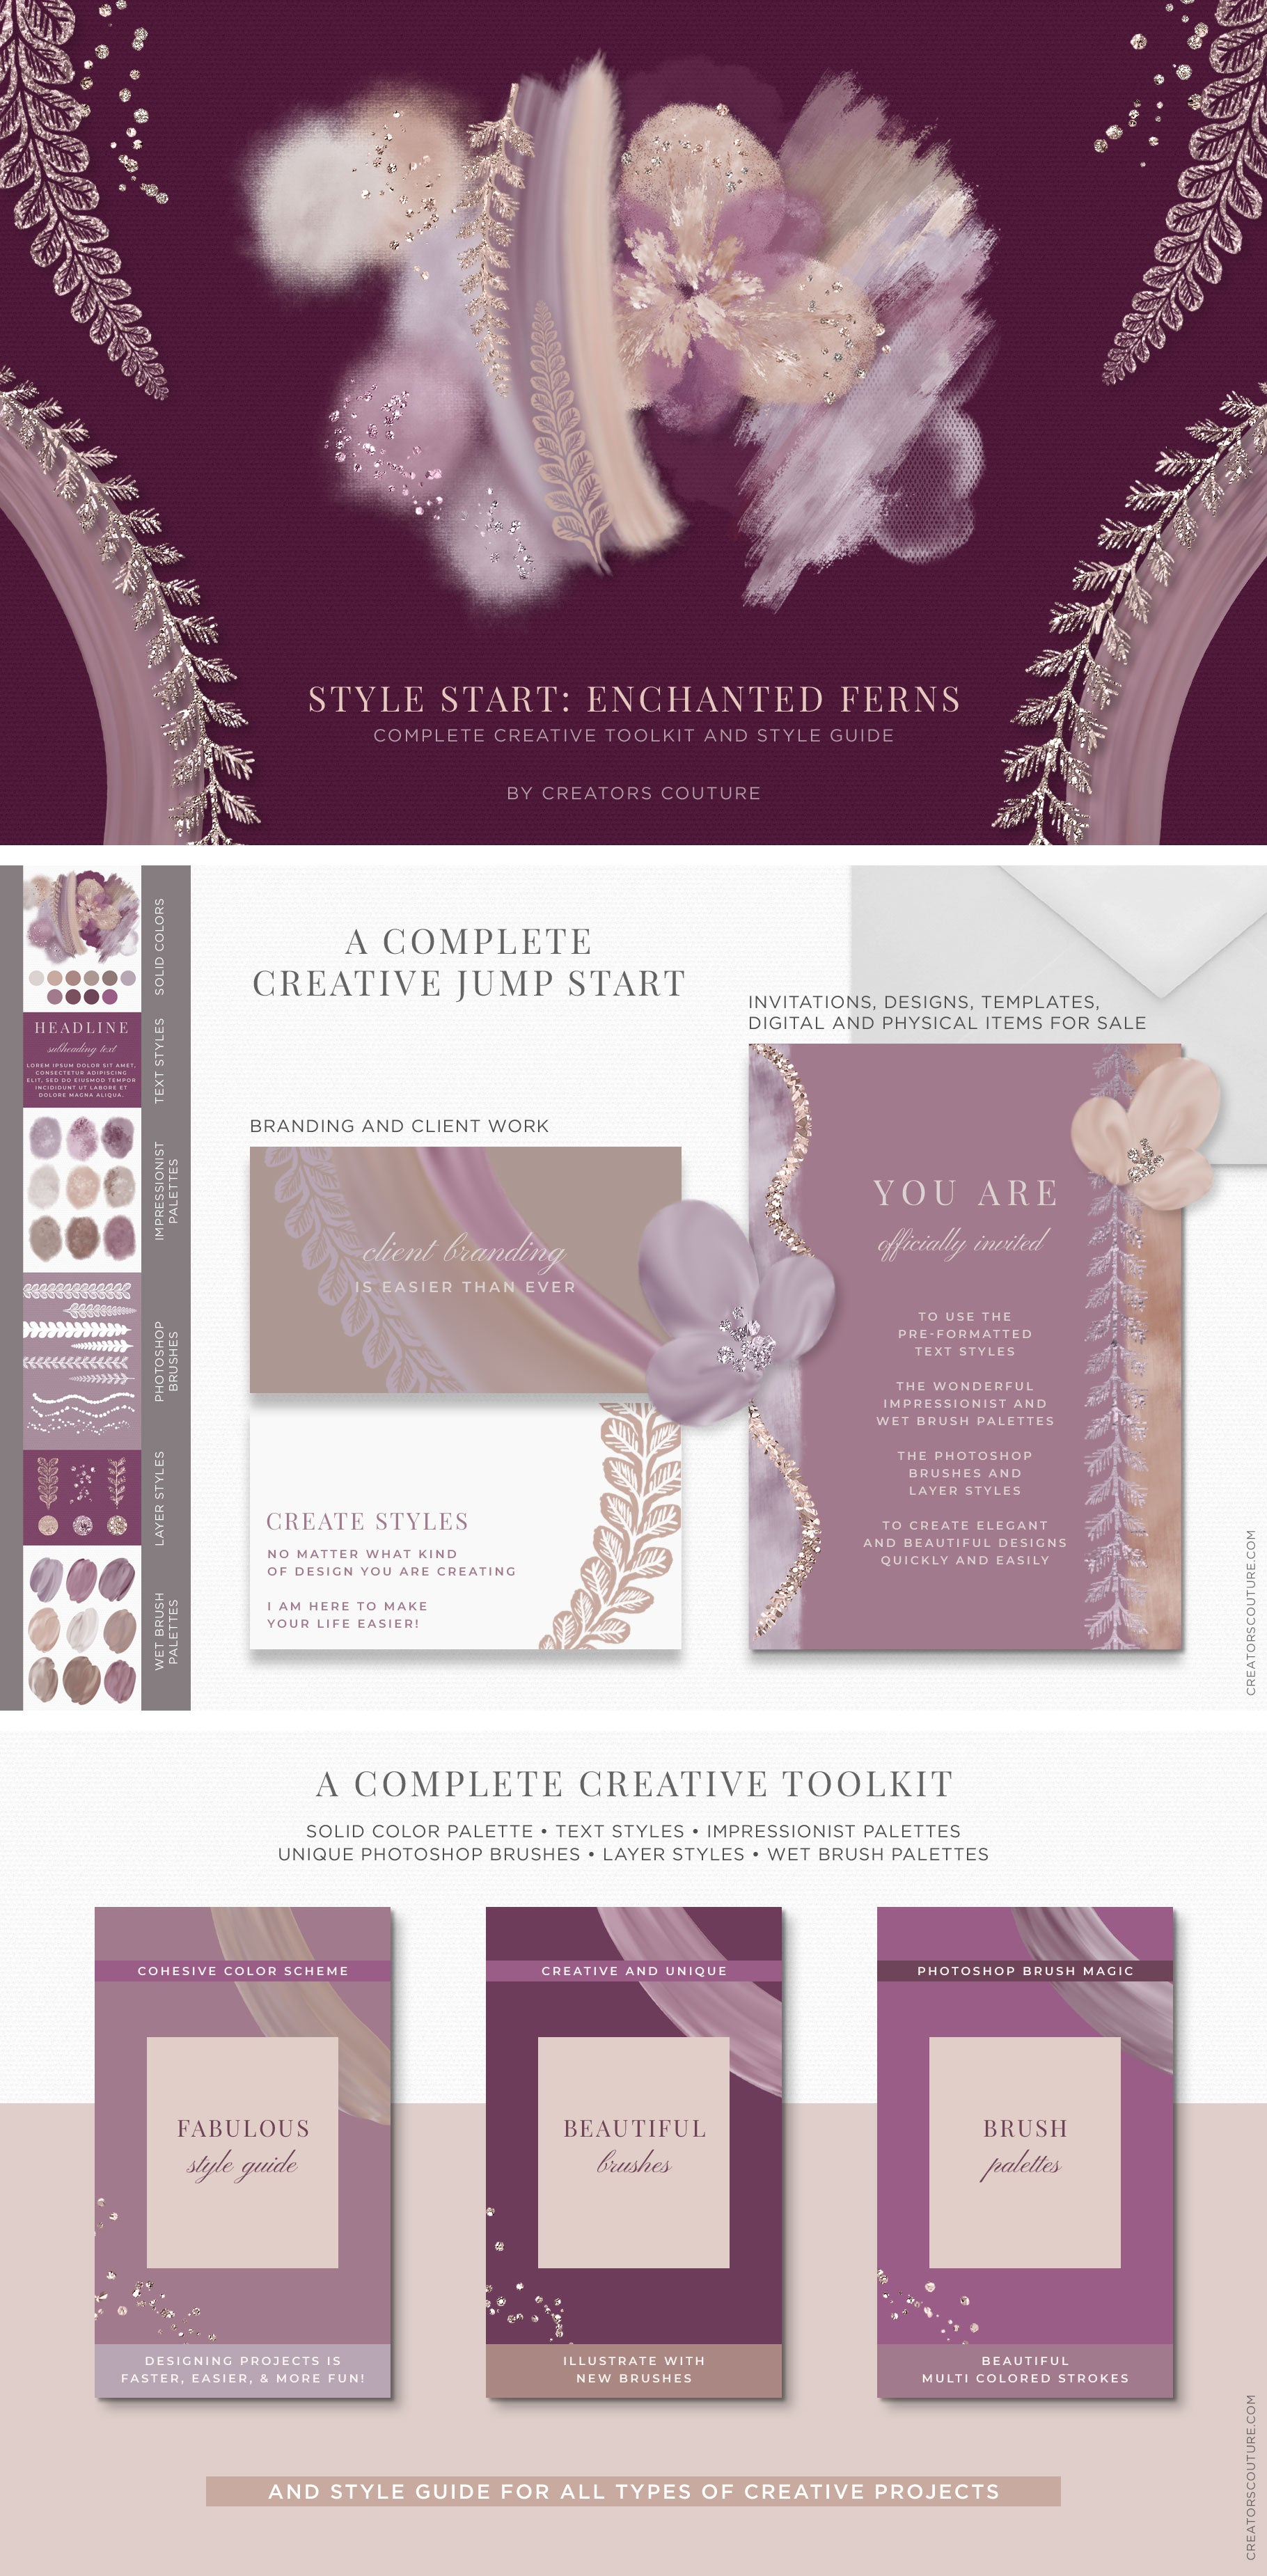 creative kit, style guide, brand board inspired by Marchesa